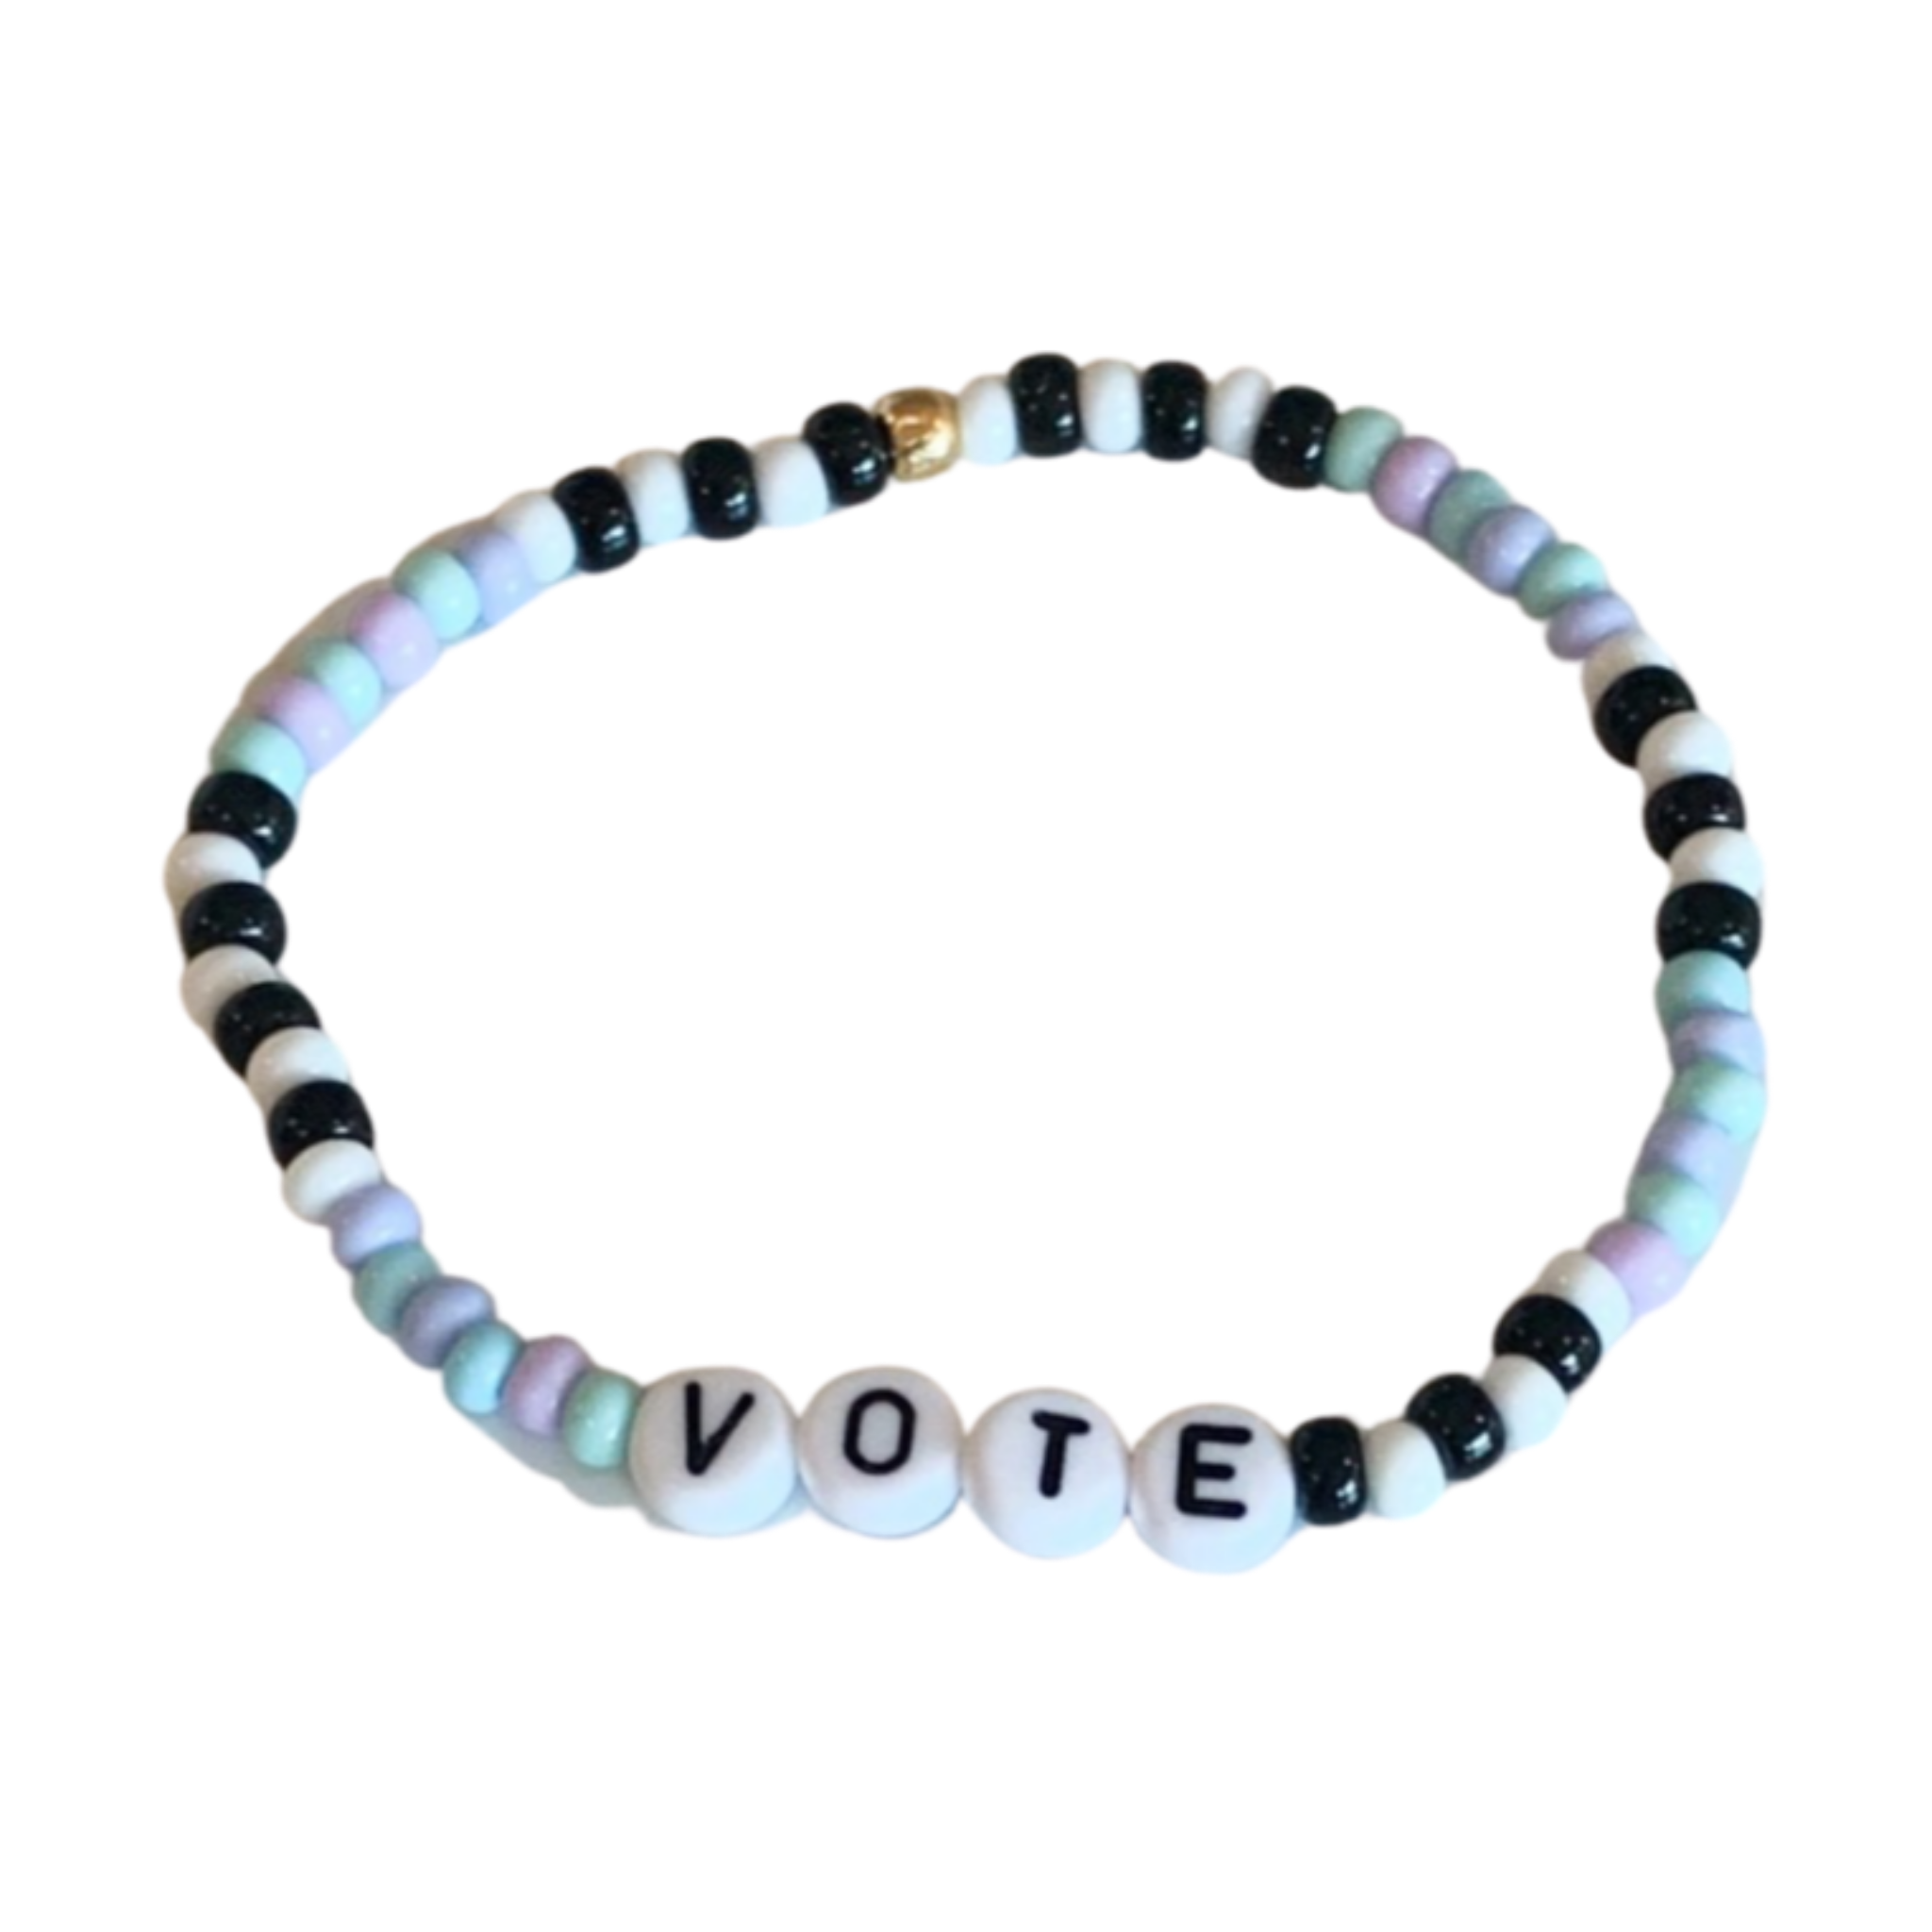 Vote Bracelet - Donate with every purchase